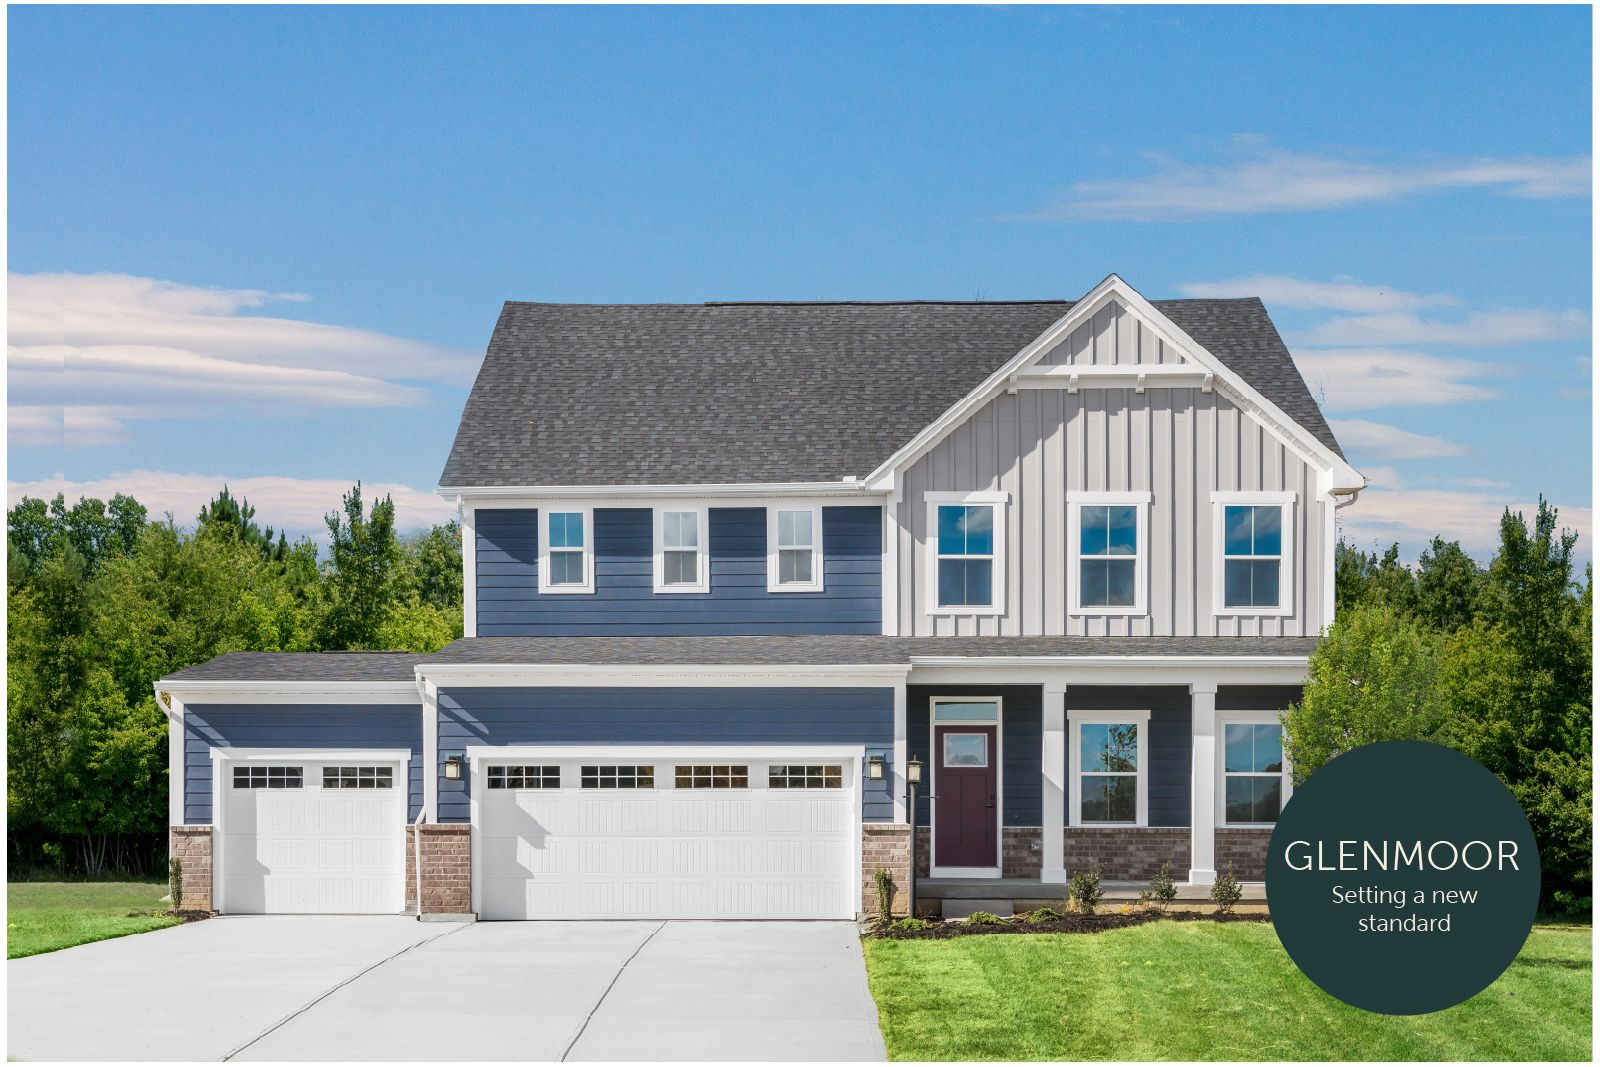 Setting a new standard in Glenmoor:Charming new homes w/ true curb appeal, ½ acre yards&3-car garages. Just 5 mi to Chesapeake but ½ the taxes. Value & beauty at every turn, from the $320s.Join the VIPs for virtual event invite!